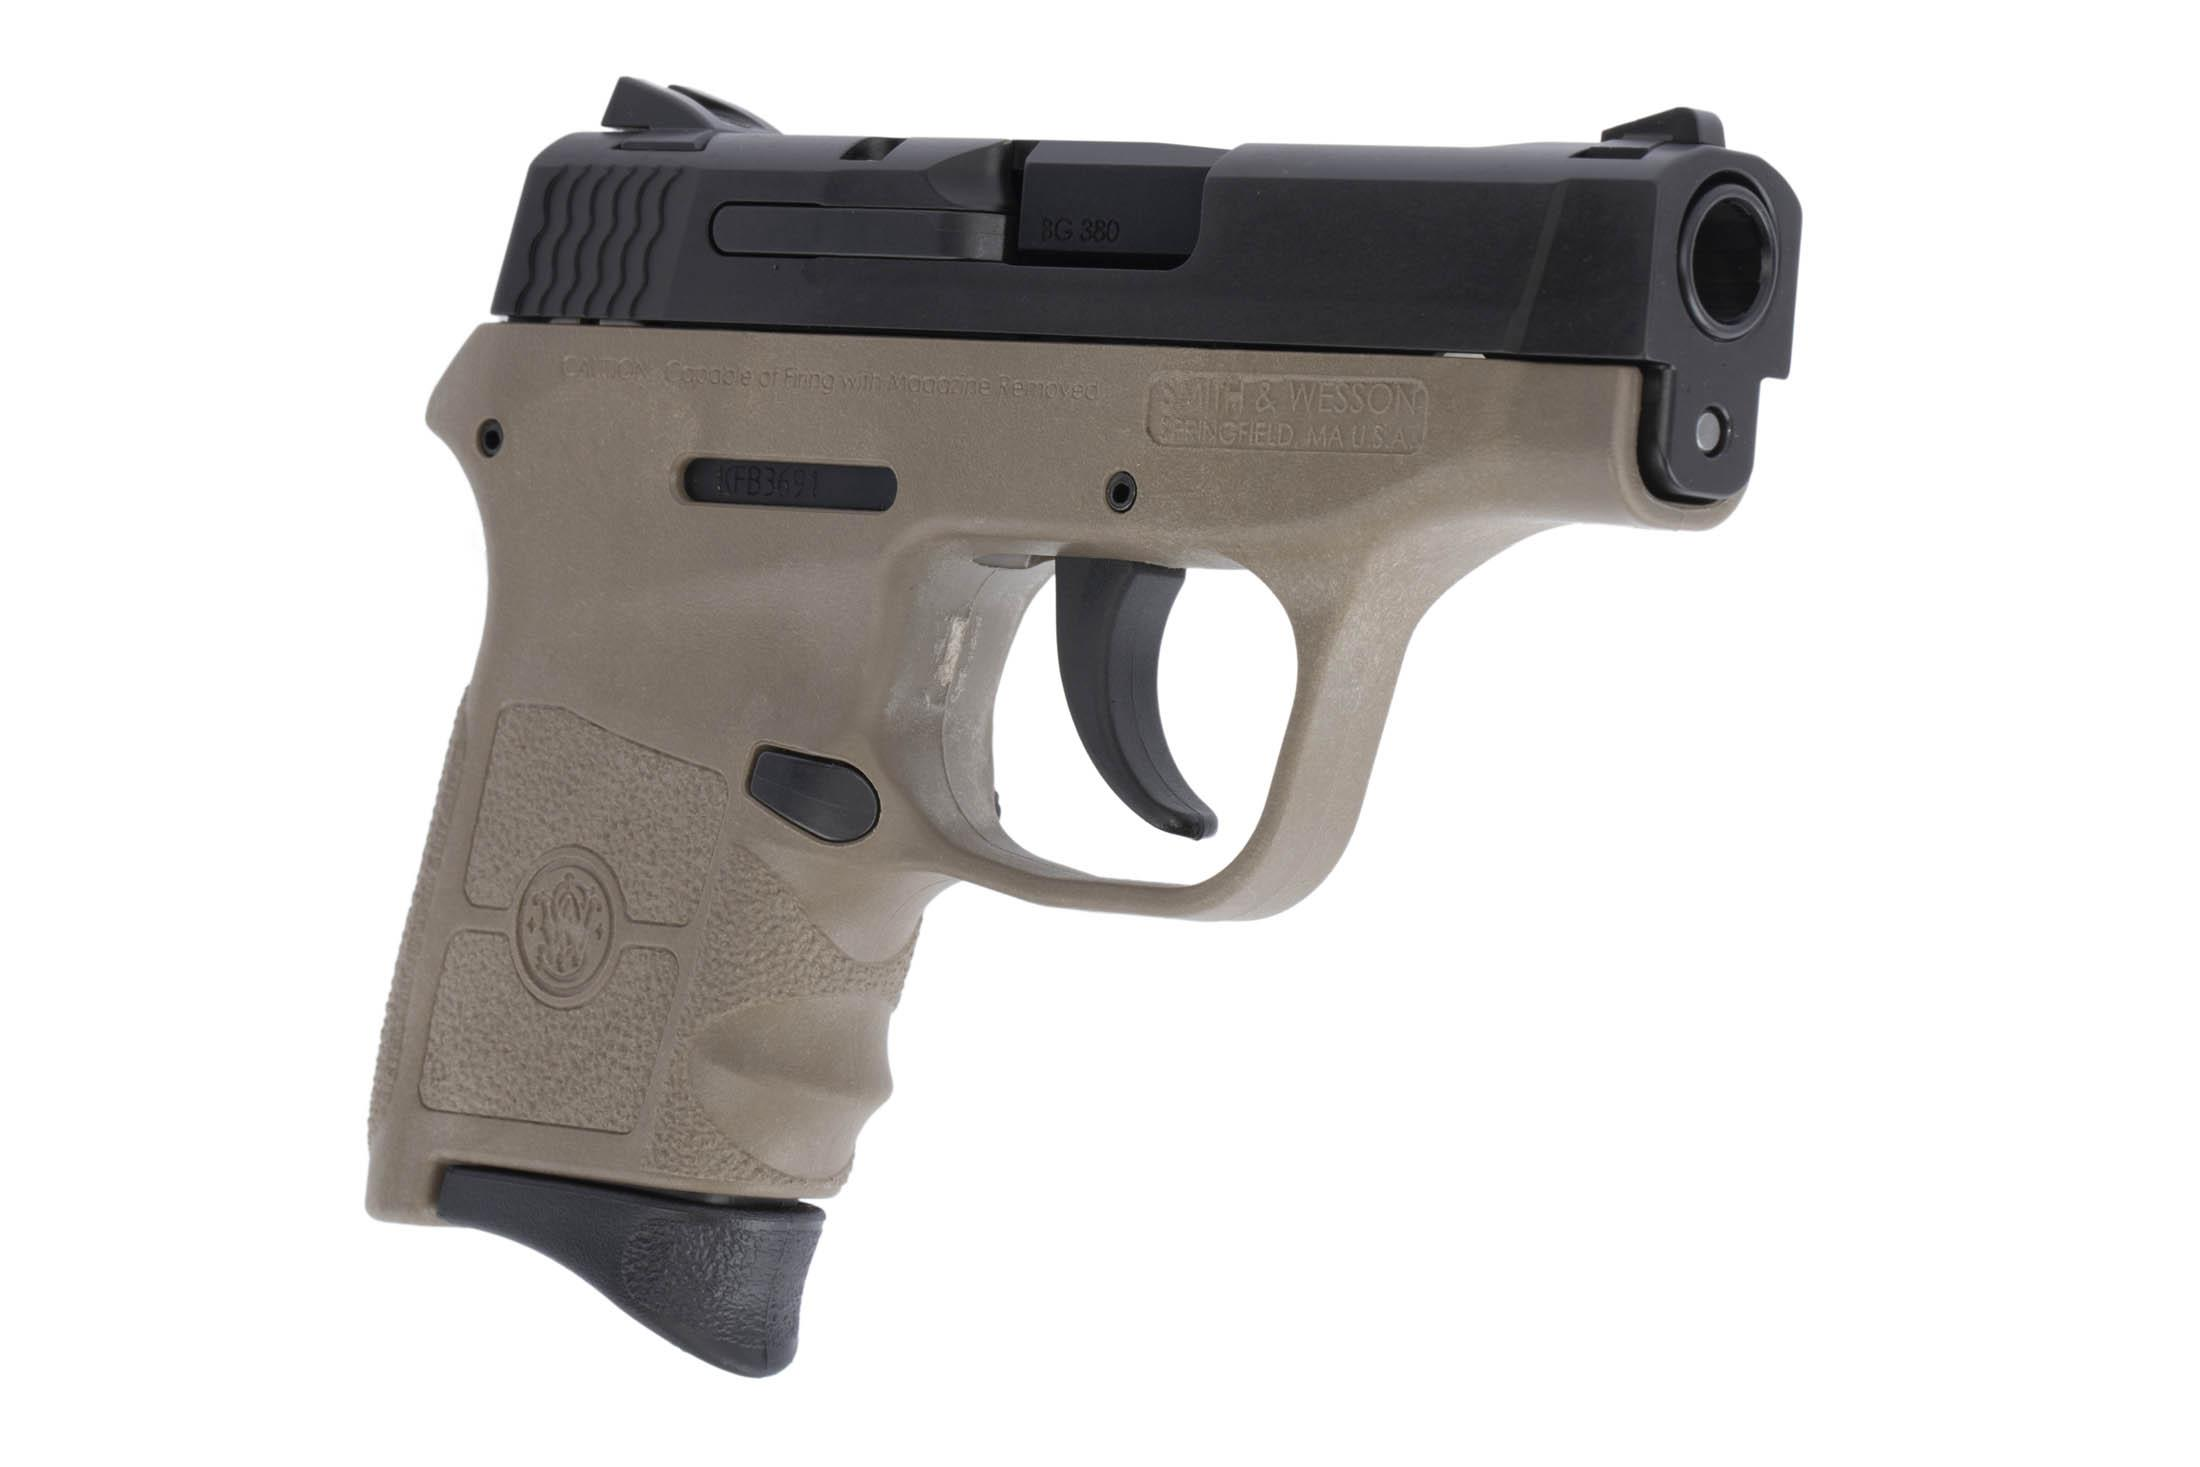 The Smith & Wesson M&P Bodyguard is a .380 ACP Sub Compact 6 round handgun with a 2.75 inch Barrel and flat dark earth frame